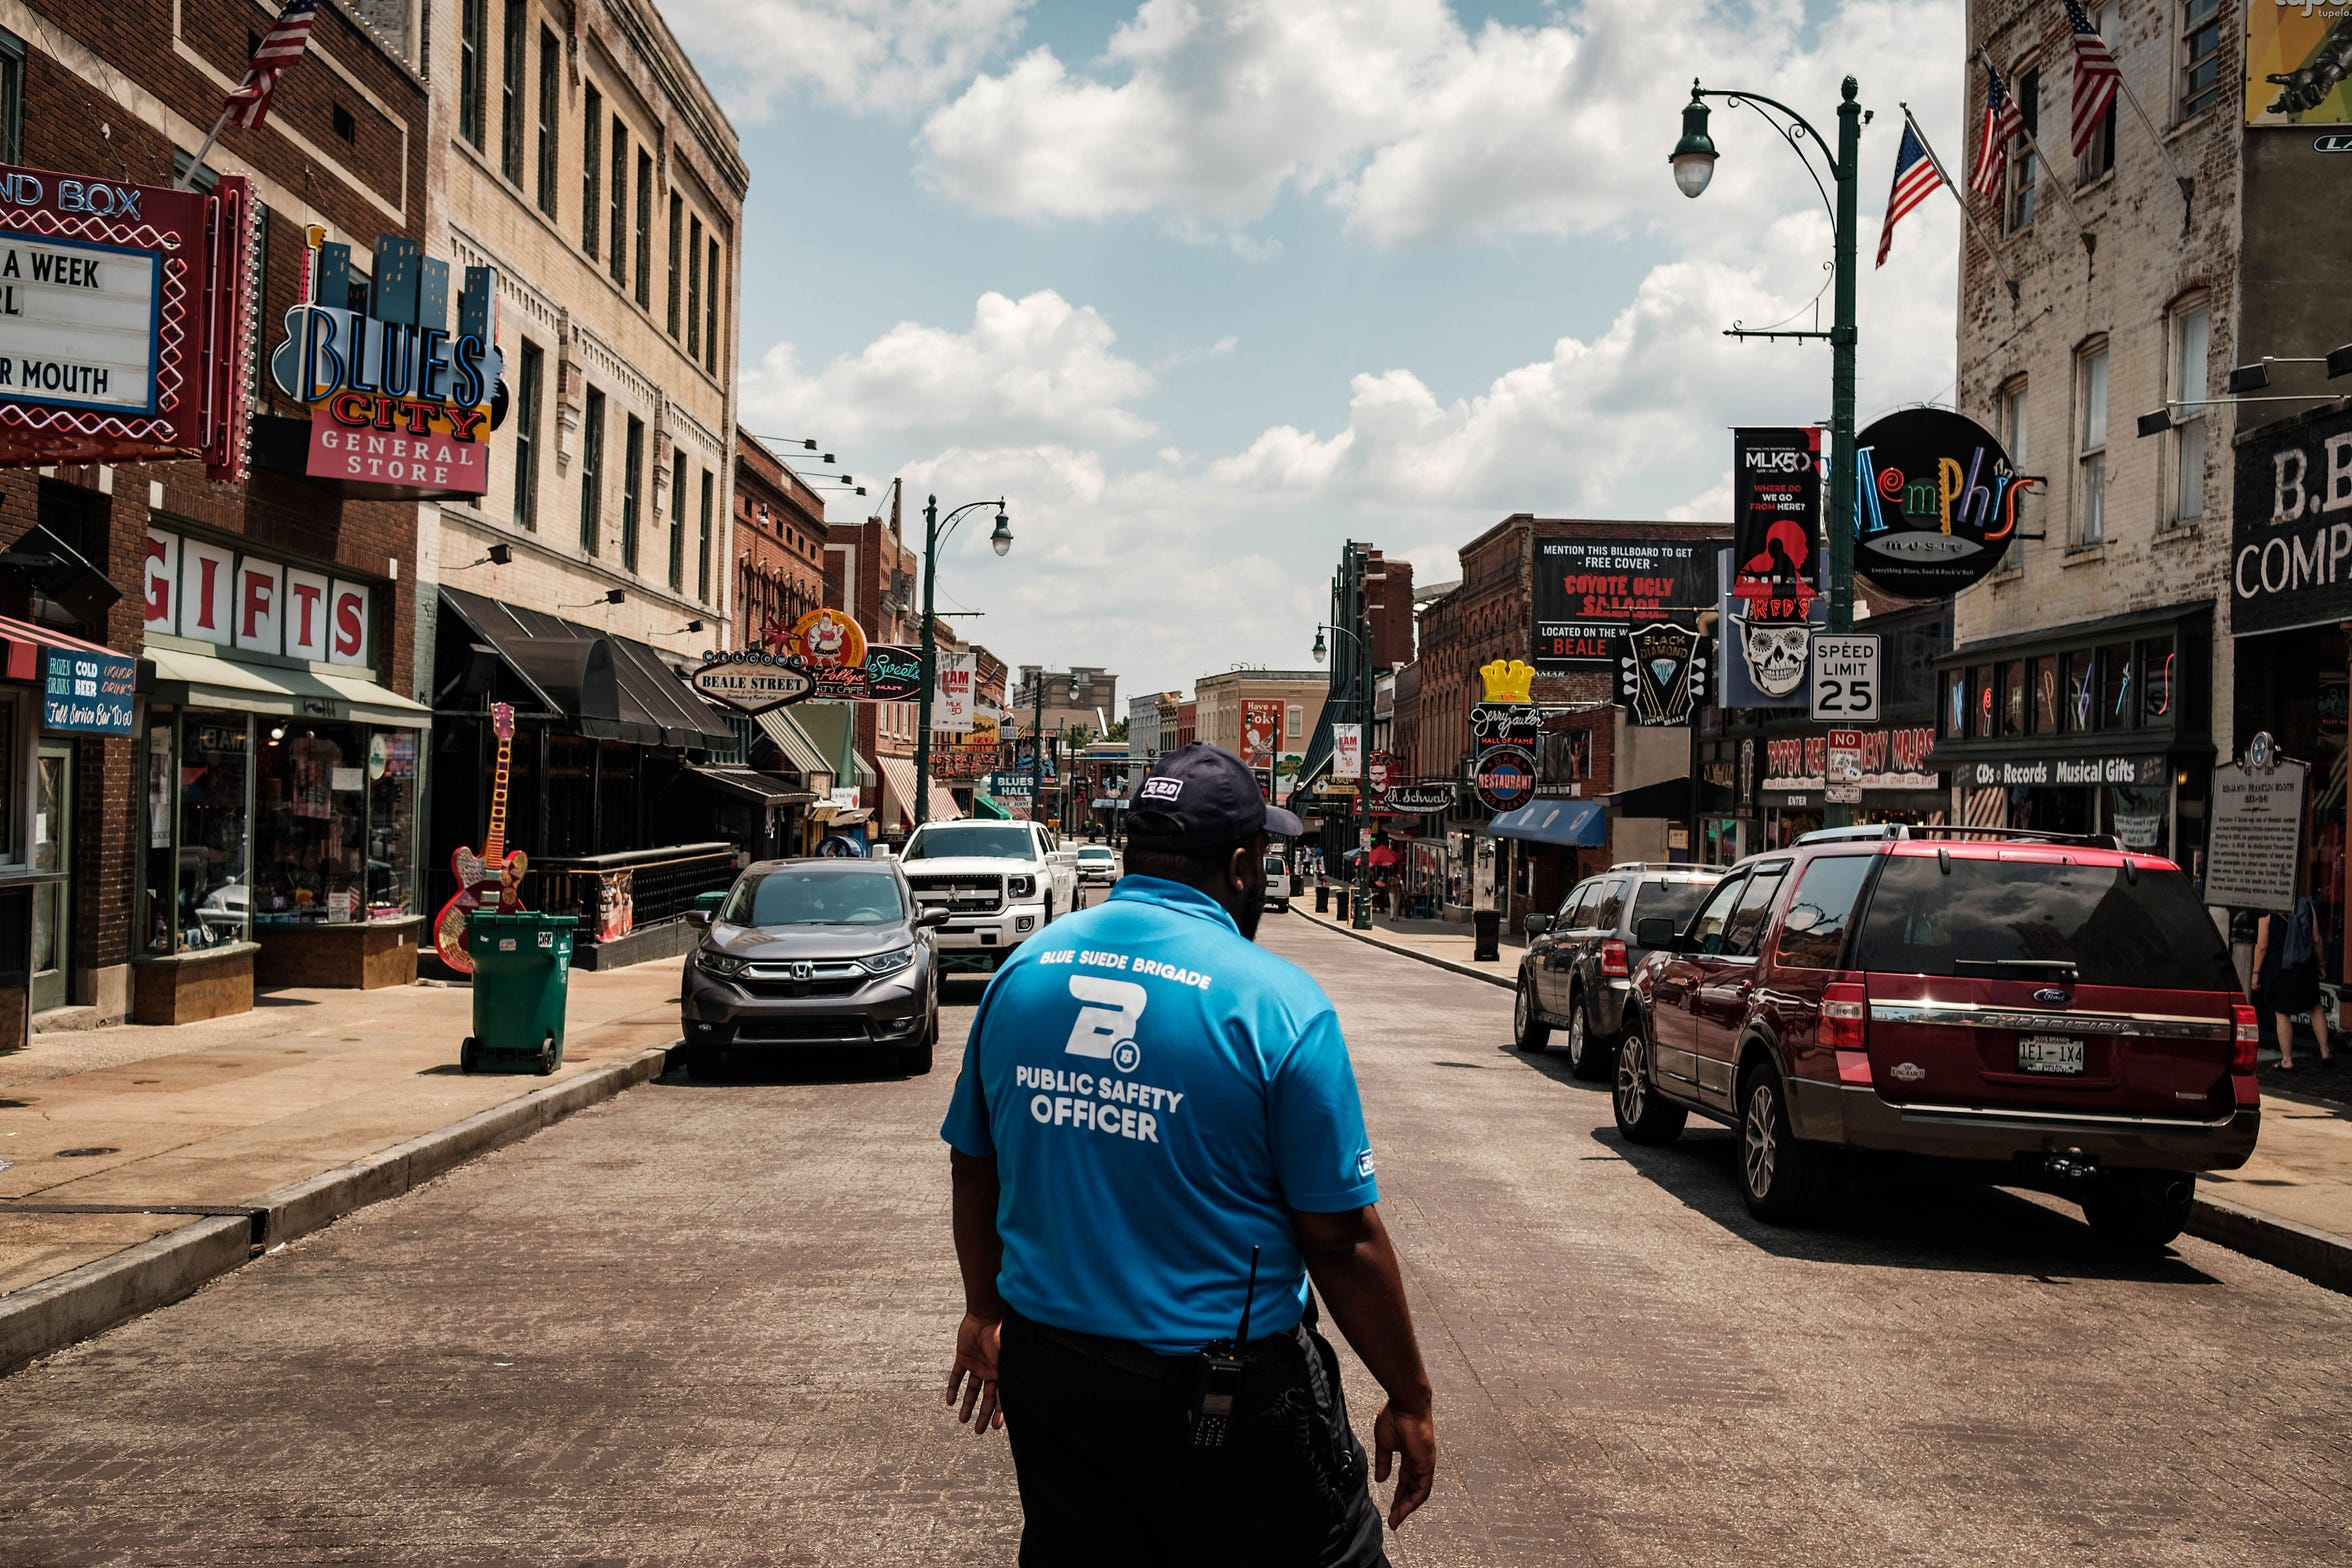 Capt. Eleslie Walker of the Blue Suede Brigade, a private security force, makes his way down Beale Street, a popular tourist destination in downtown Memphis.